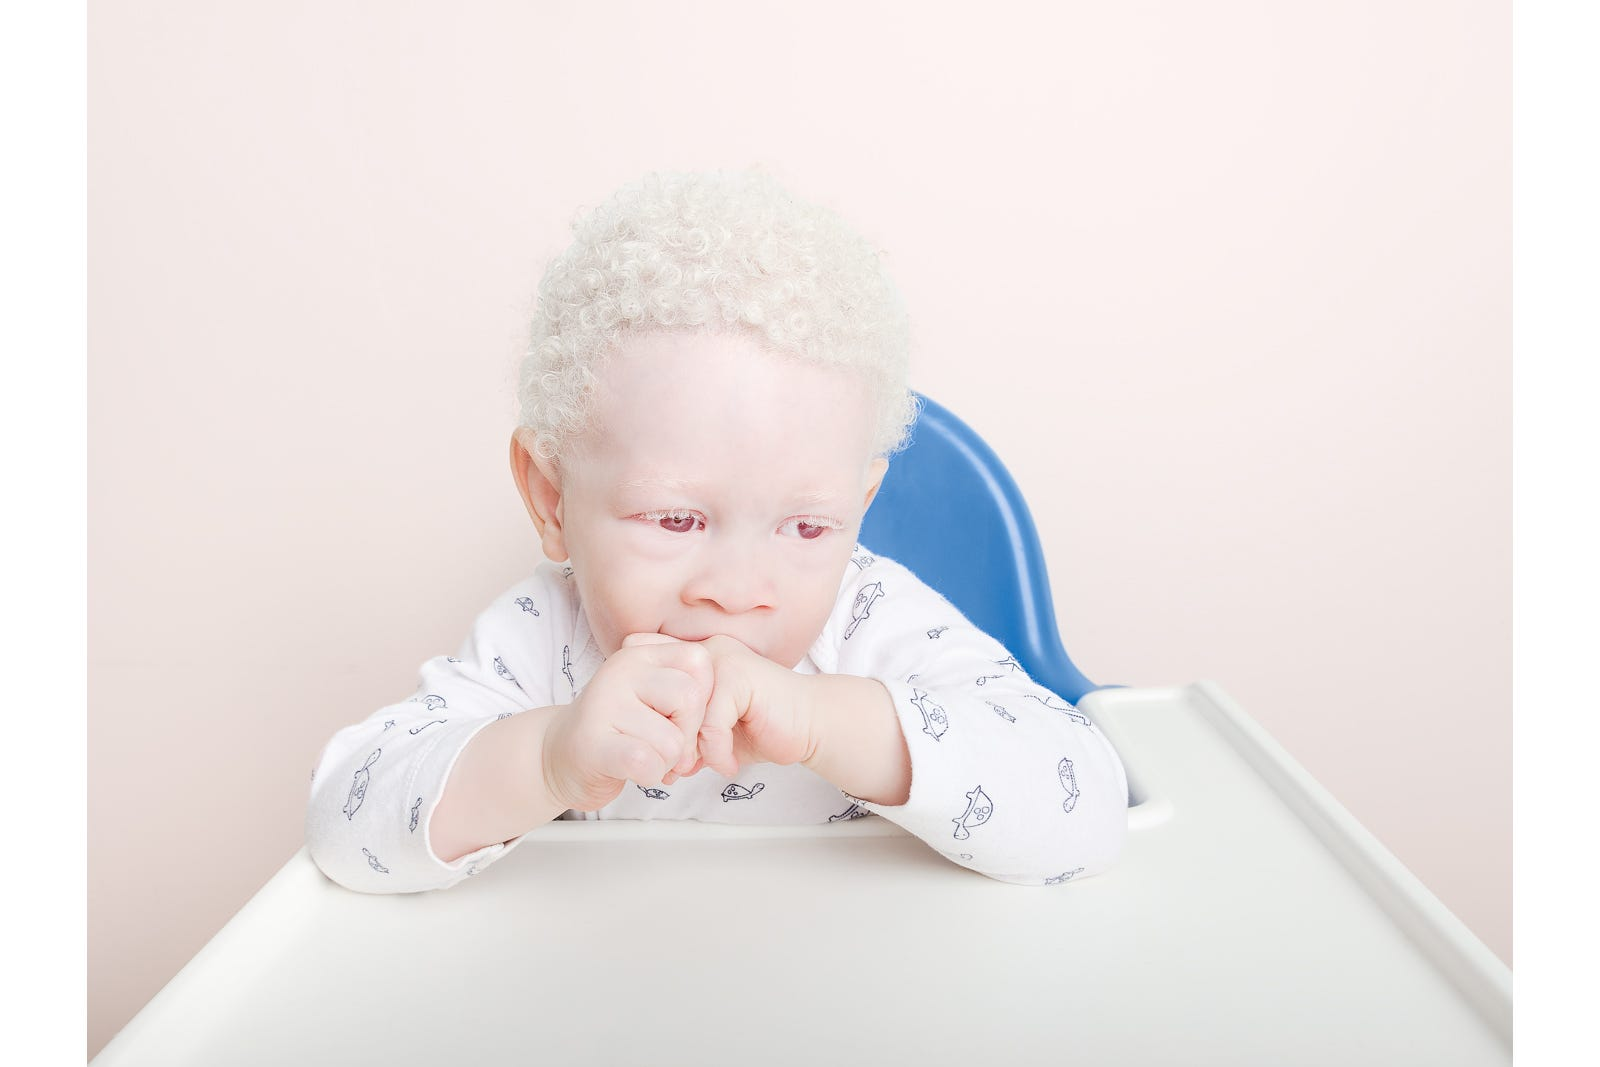 term paper on albinism So far, scientists have had some success in correcting patches of depigmented skin and hair in mice, but they are a long way from translating this research to humans what animals, besides humans, can be albinos any animal that has melanocytes can get albinism that means virtually all mammals.